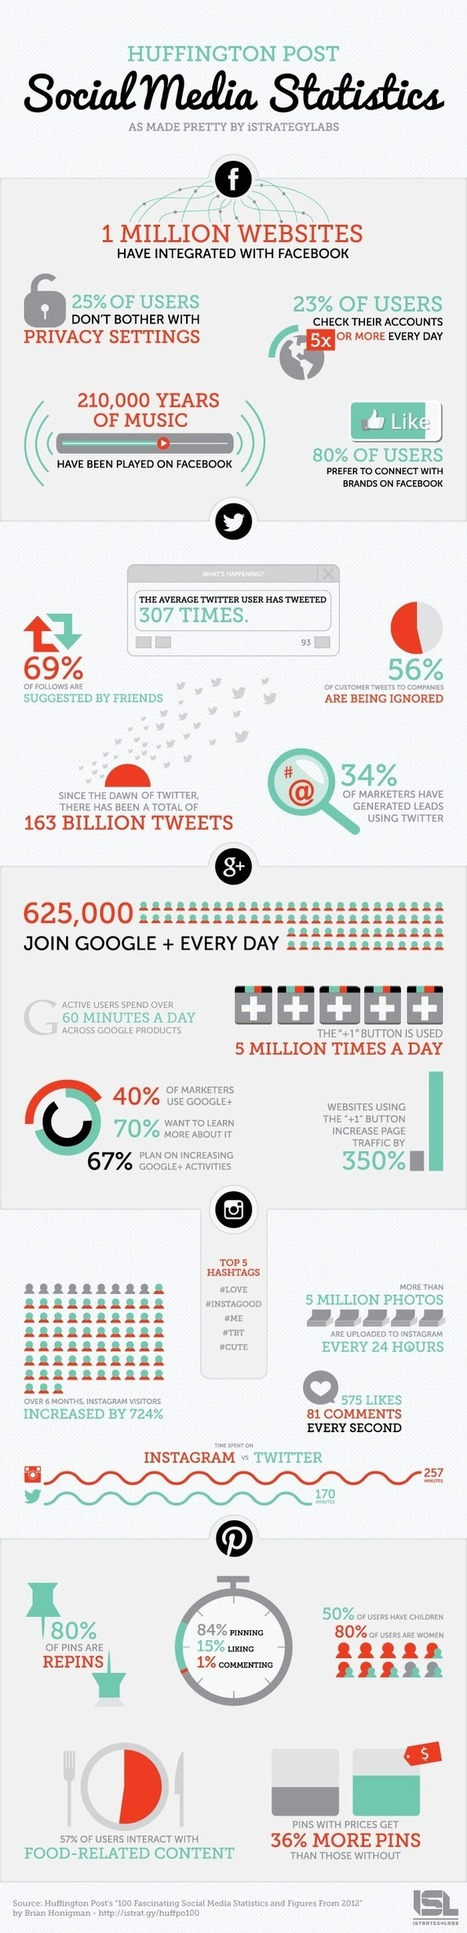 2012′s Most Fascinating #SocialMedia Statistics | Social Media e Innovación Tecnológica | Scoop.it